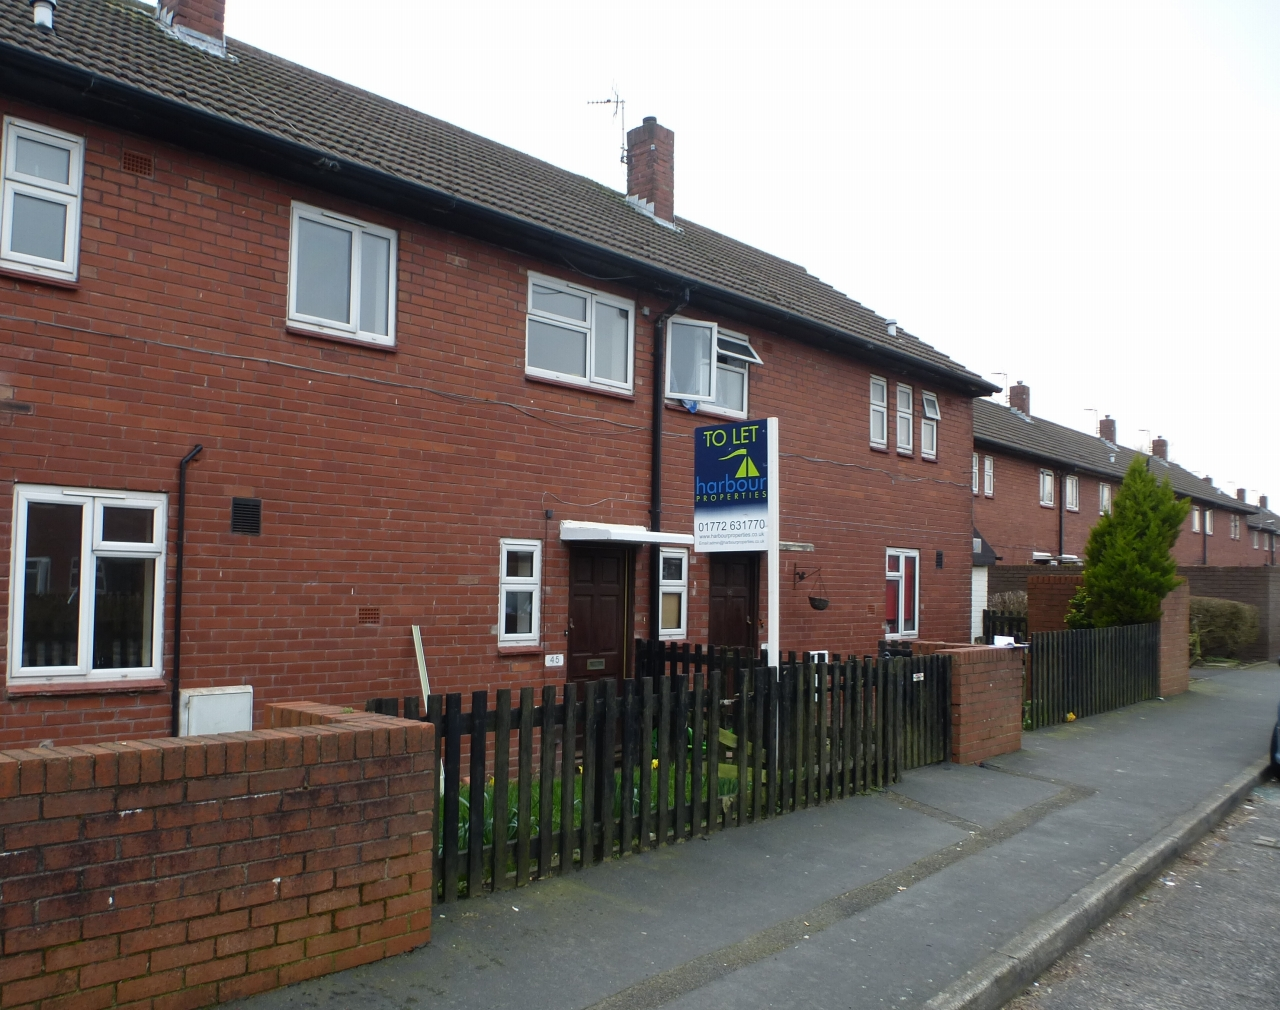 3 bedroom mid terraced house Let Agreed in Preston - Property photograph